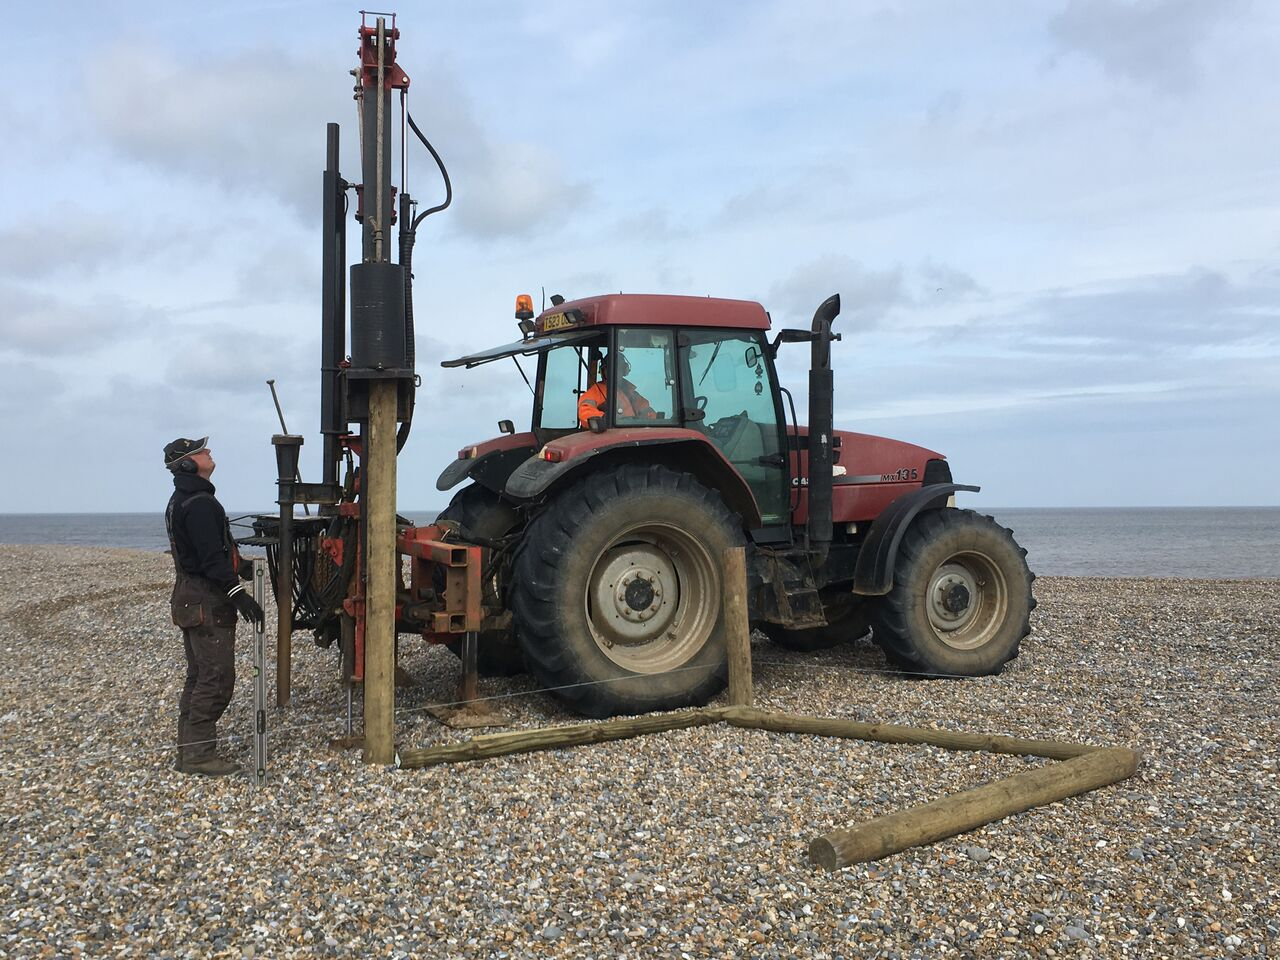 Getting machinery onto the beach was the first challenge